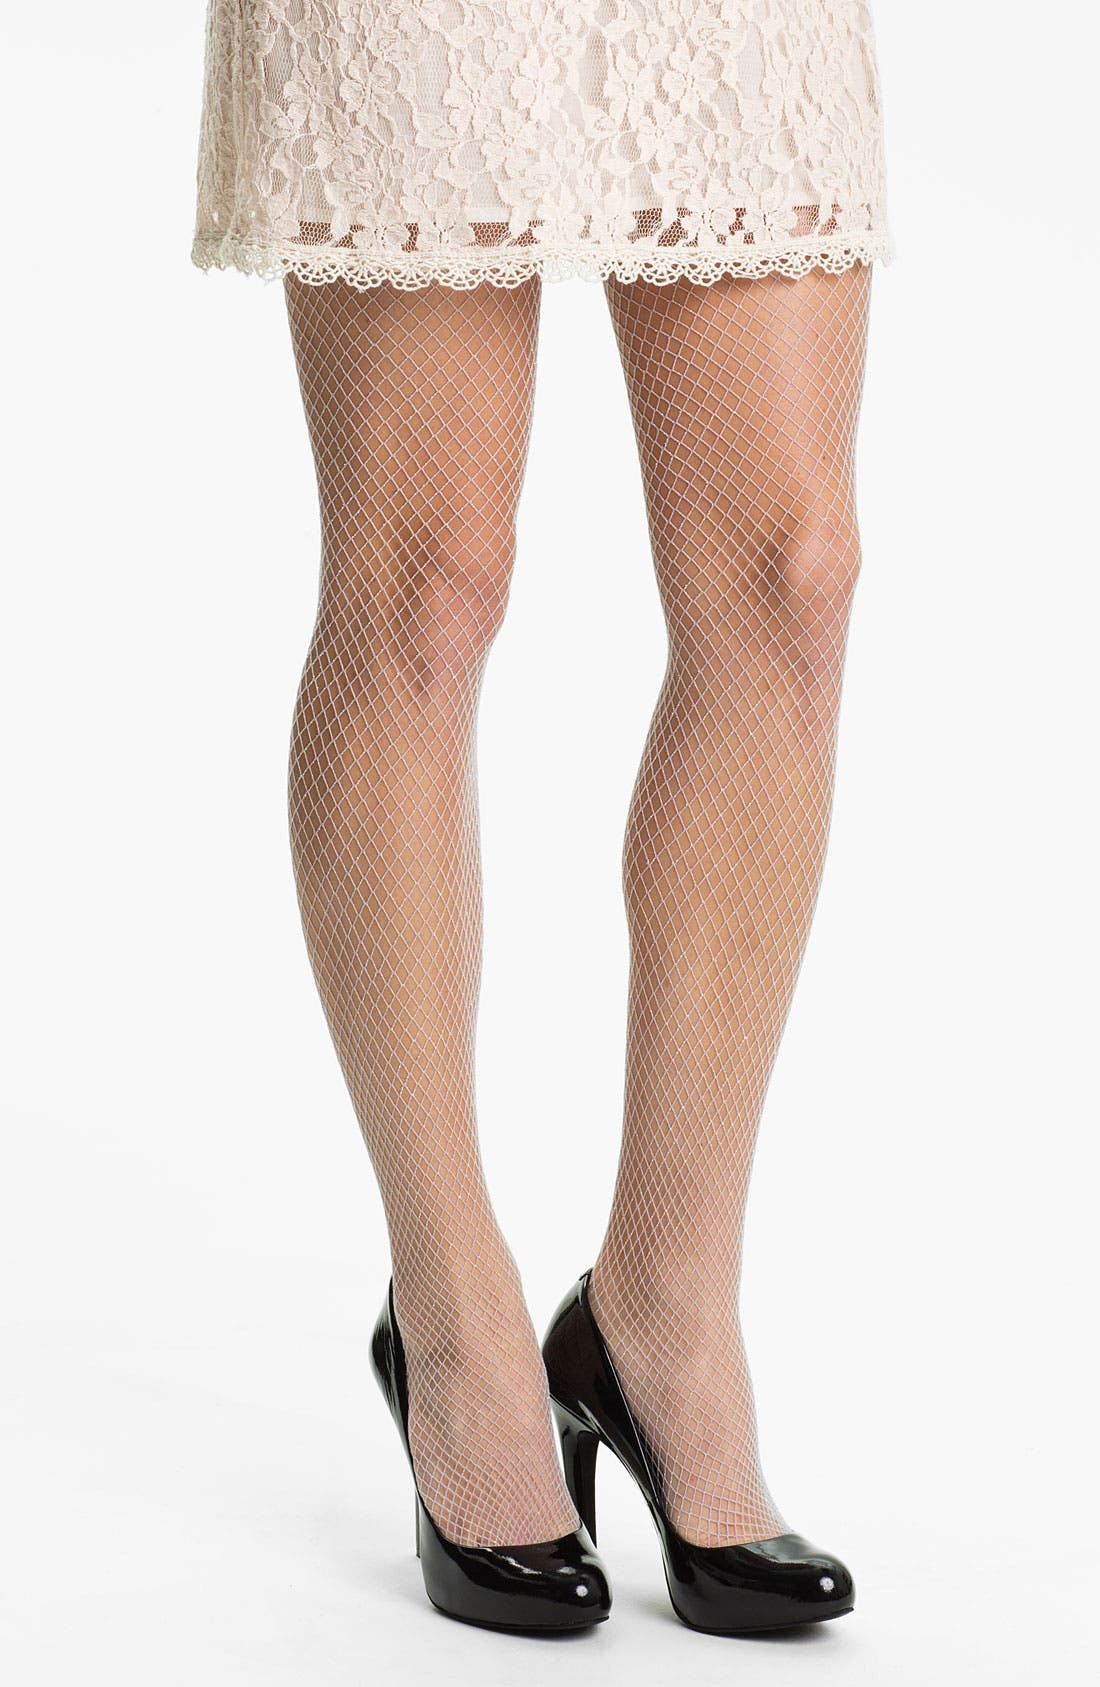 Main Image - Nordstrom 'Shine' Fishnet Tights